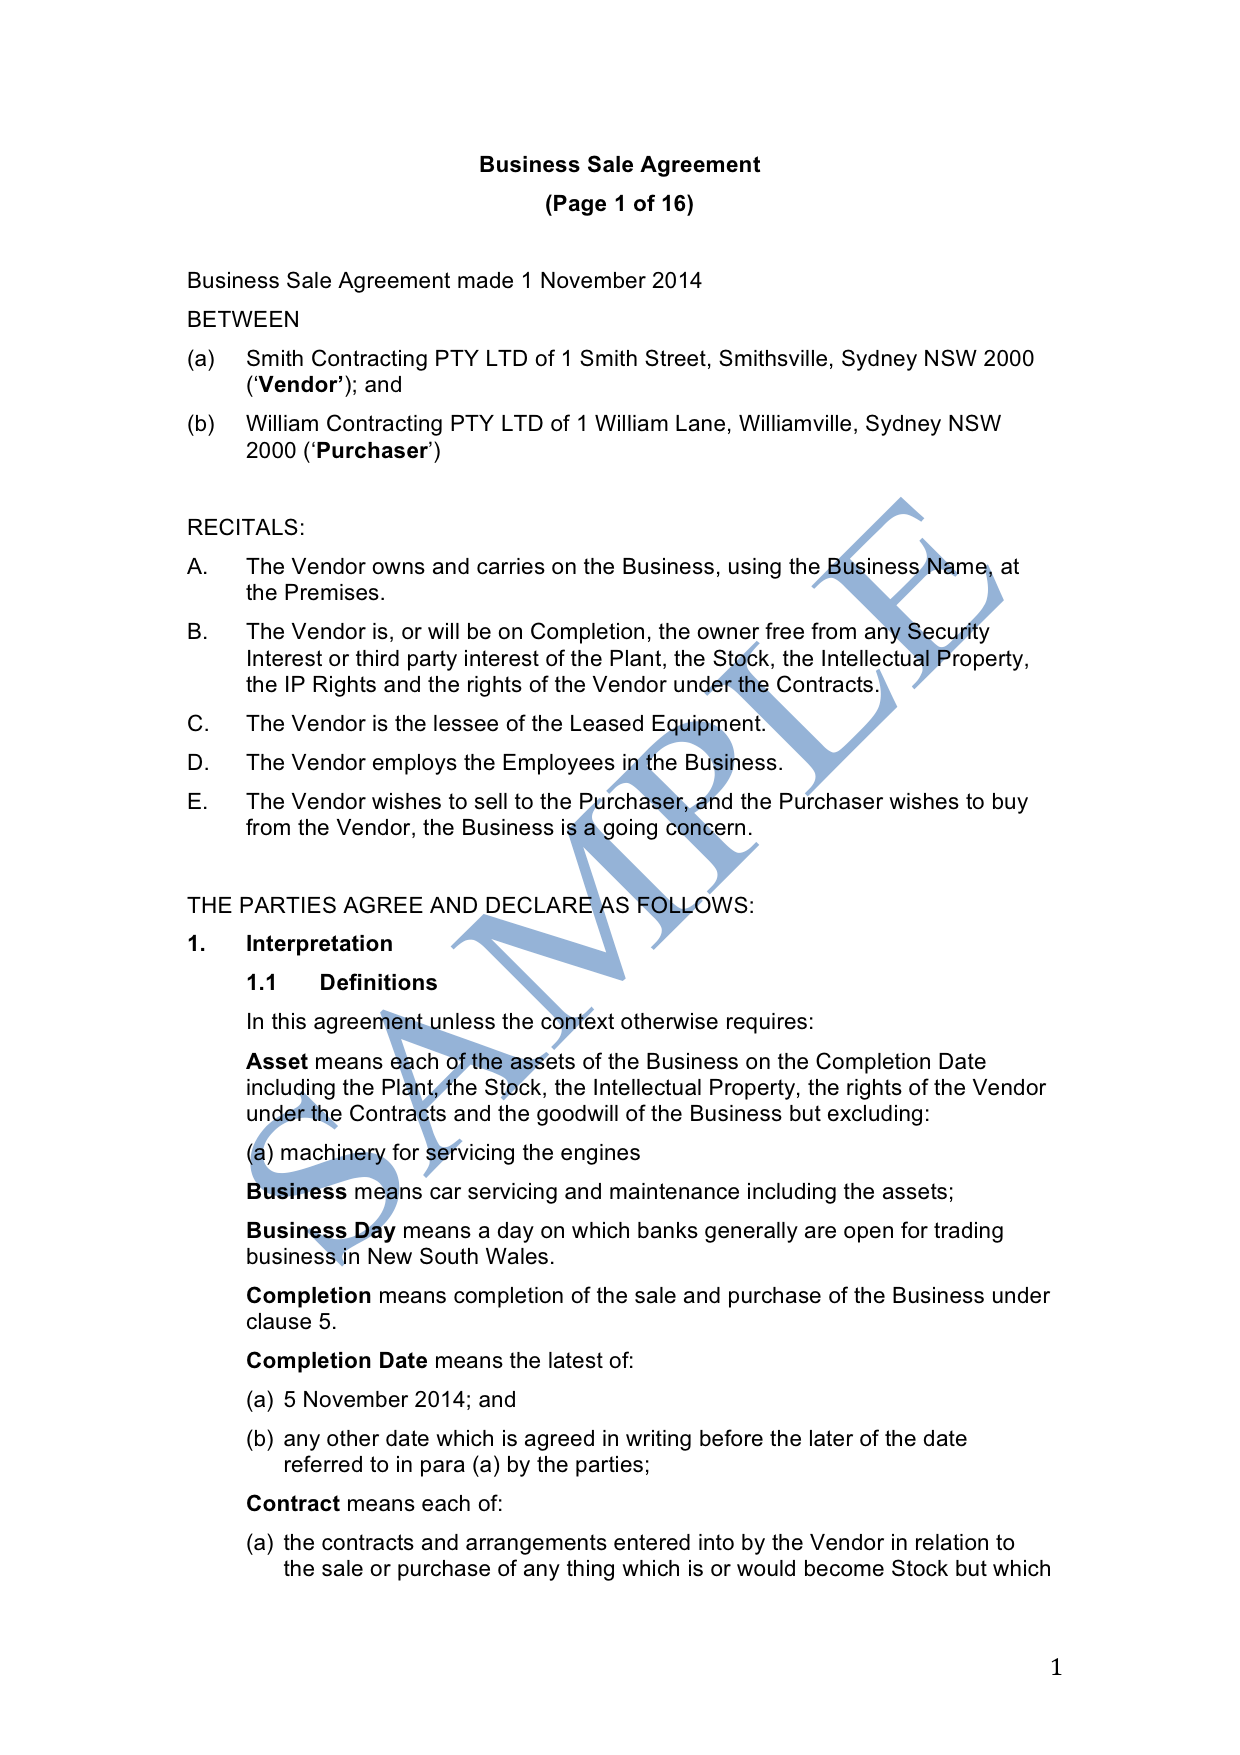 free prenuptial agreement template canada - sample agreement gtld world congress